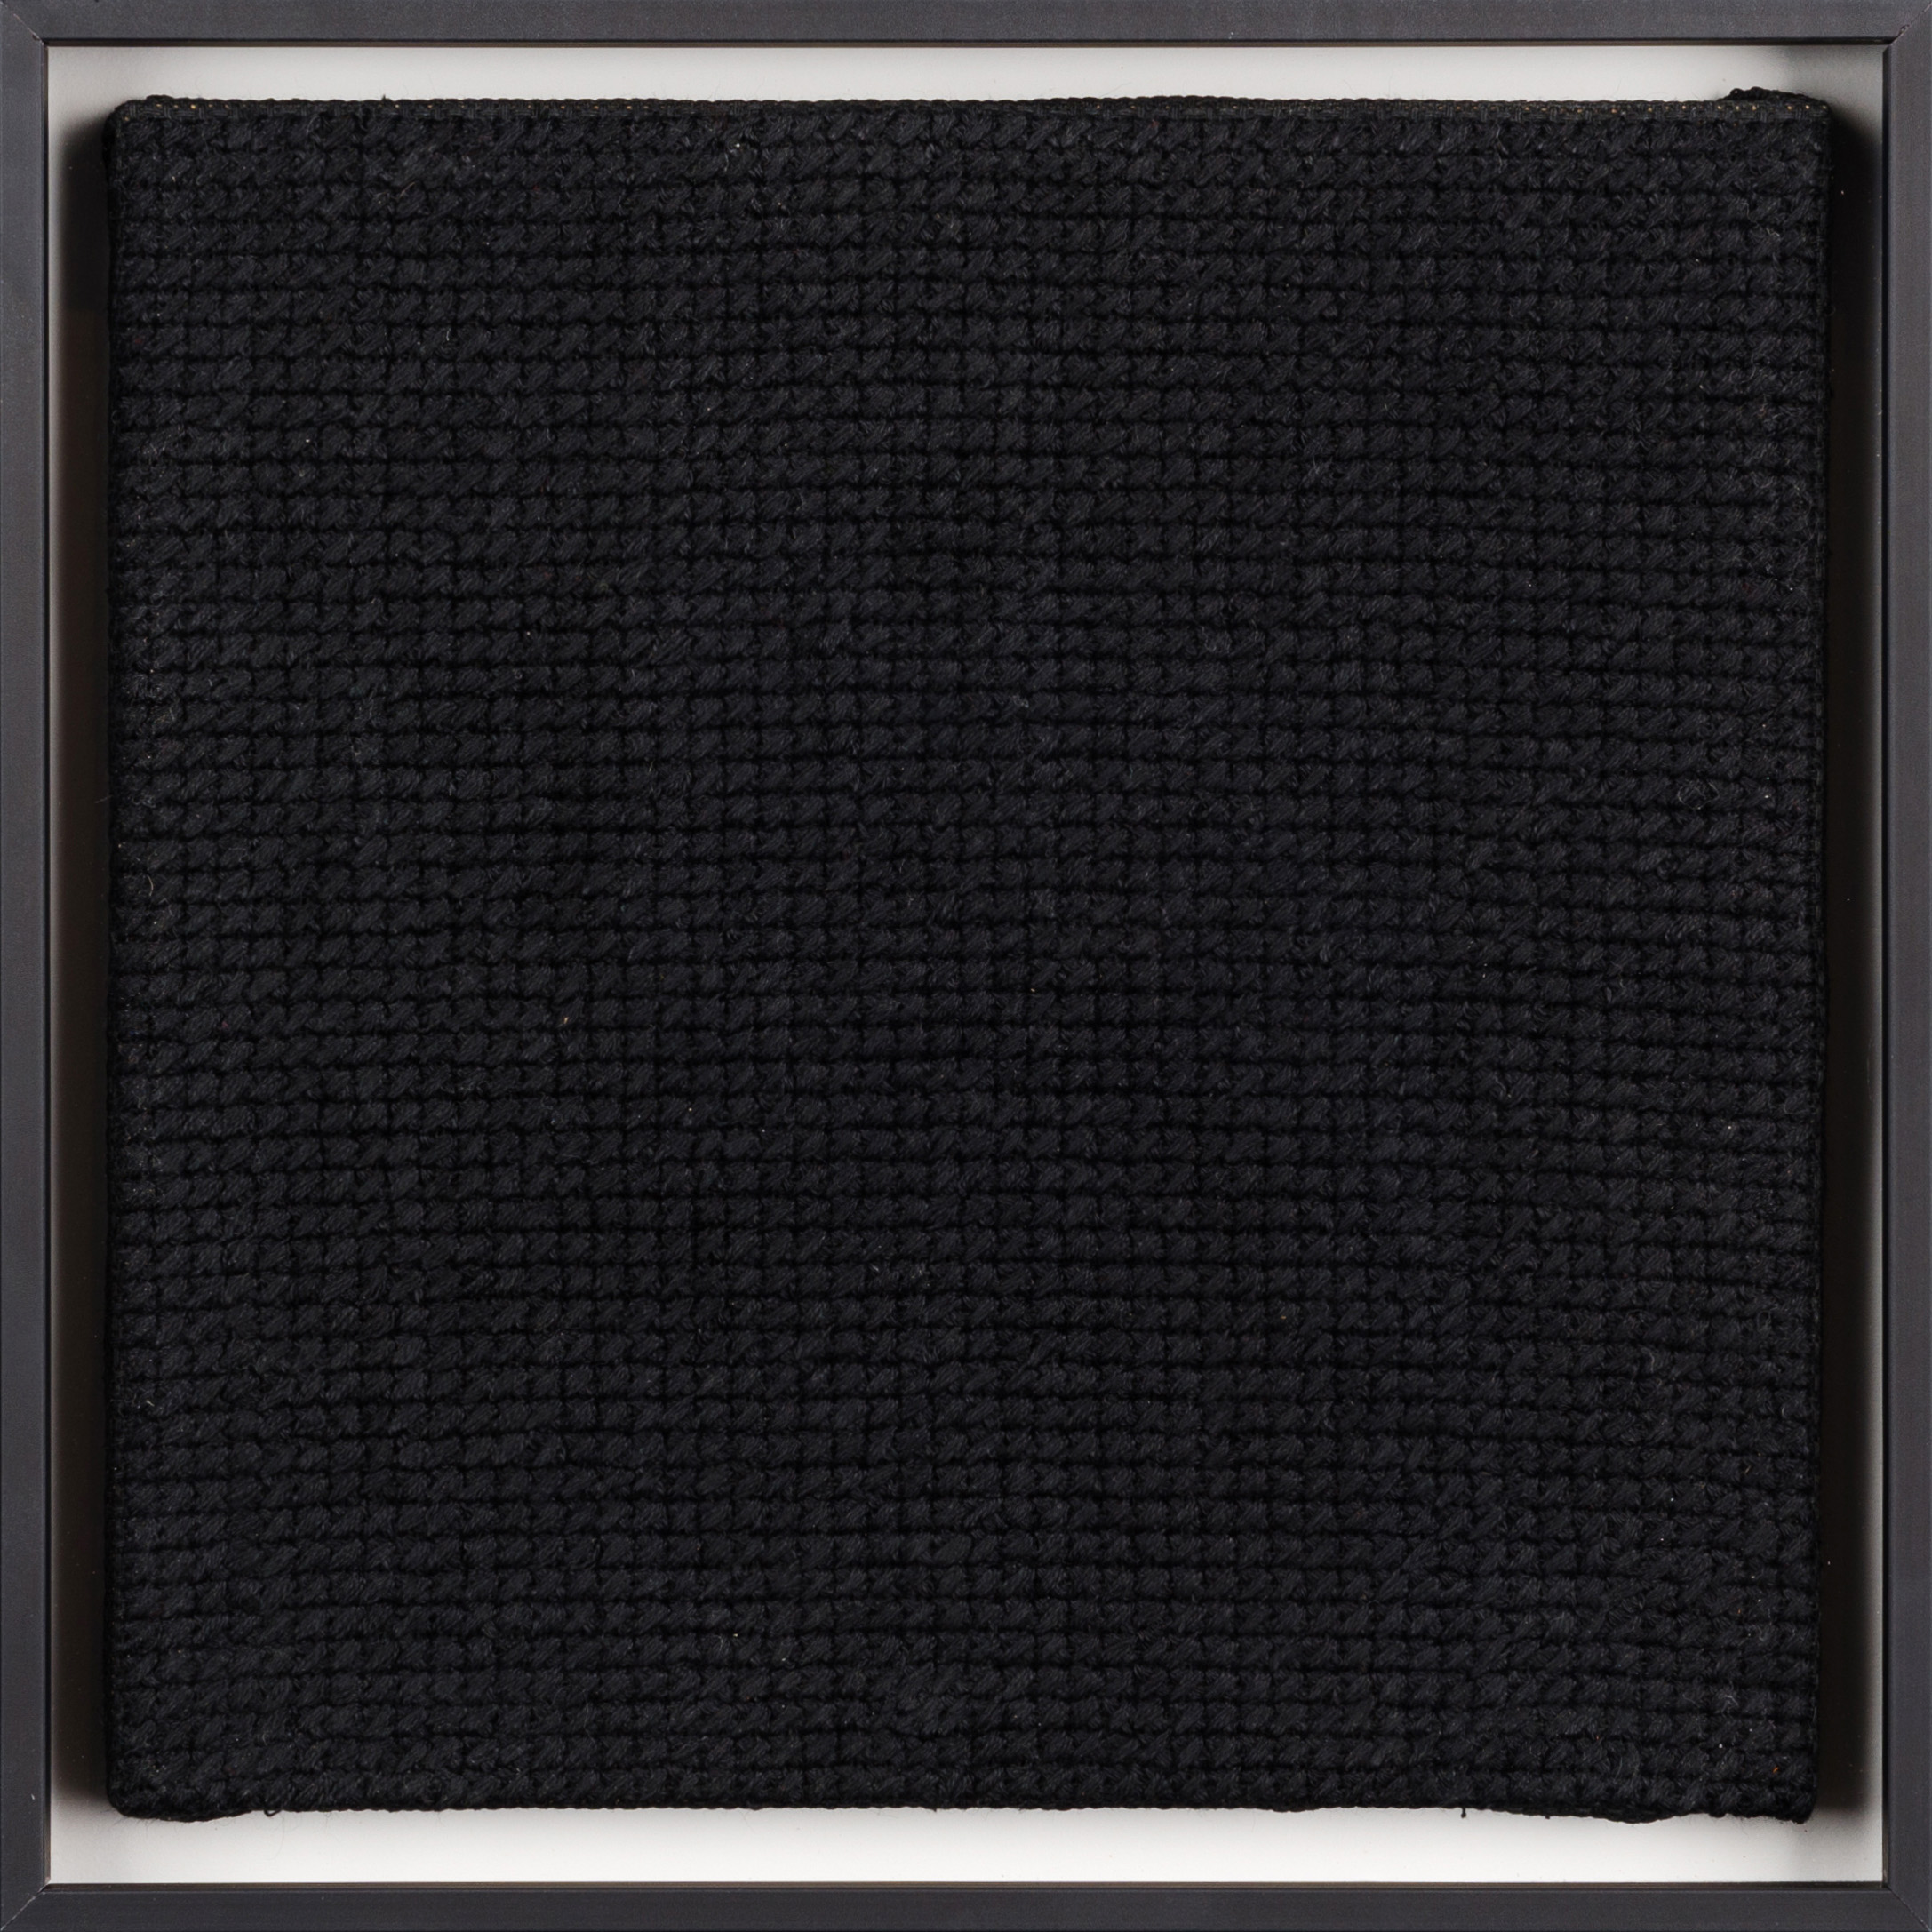 PIERRE LE RICHE. Black on black, 2016. Cross-stitch embroidery on Aida cloth. 2500 stitched. 205 x 205mm. Framed.jpg